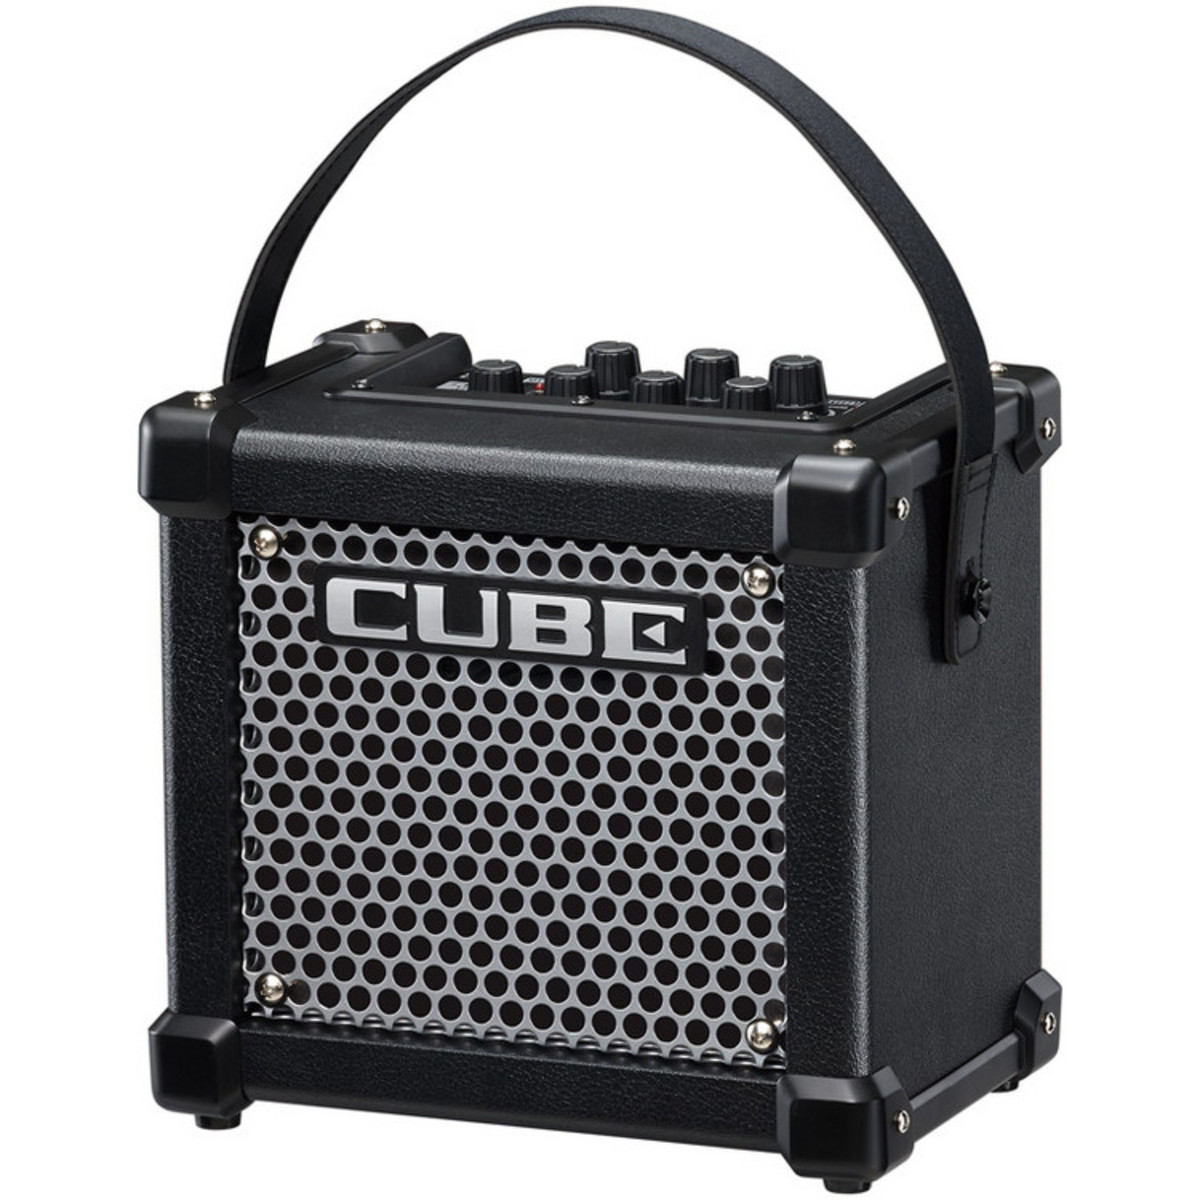 roland micro cube gx guitar amplifier black at gear4music. Black Bedroom Furniture Sets. Home Design Ideas